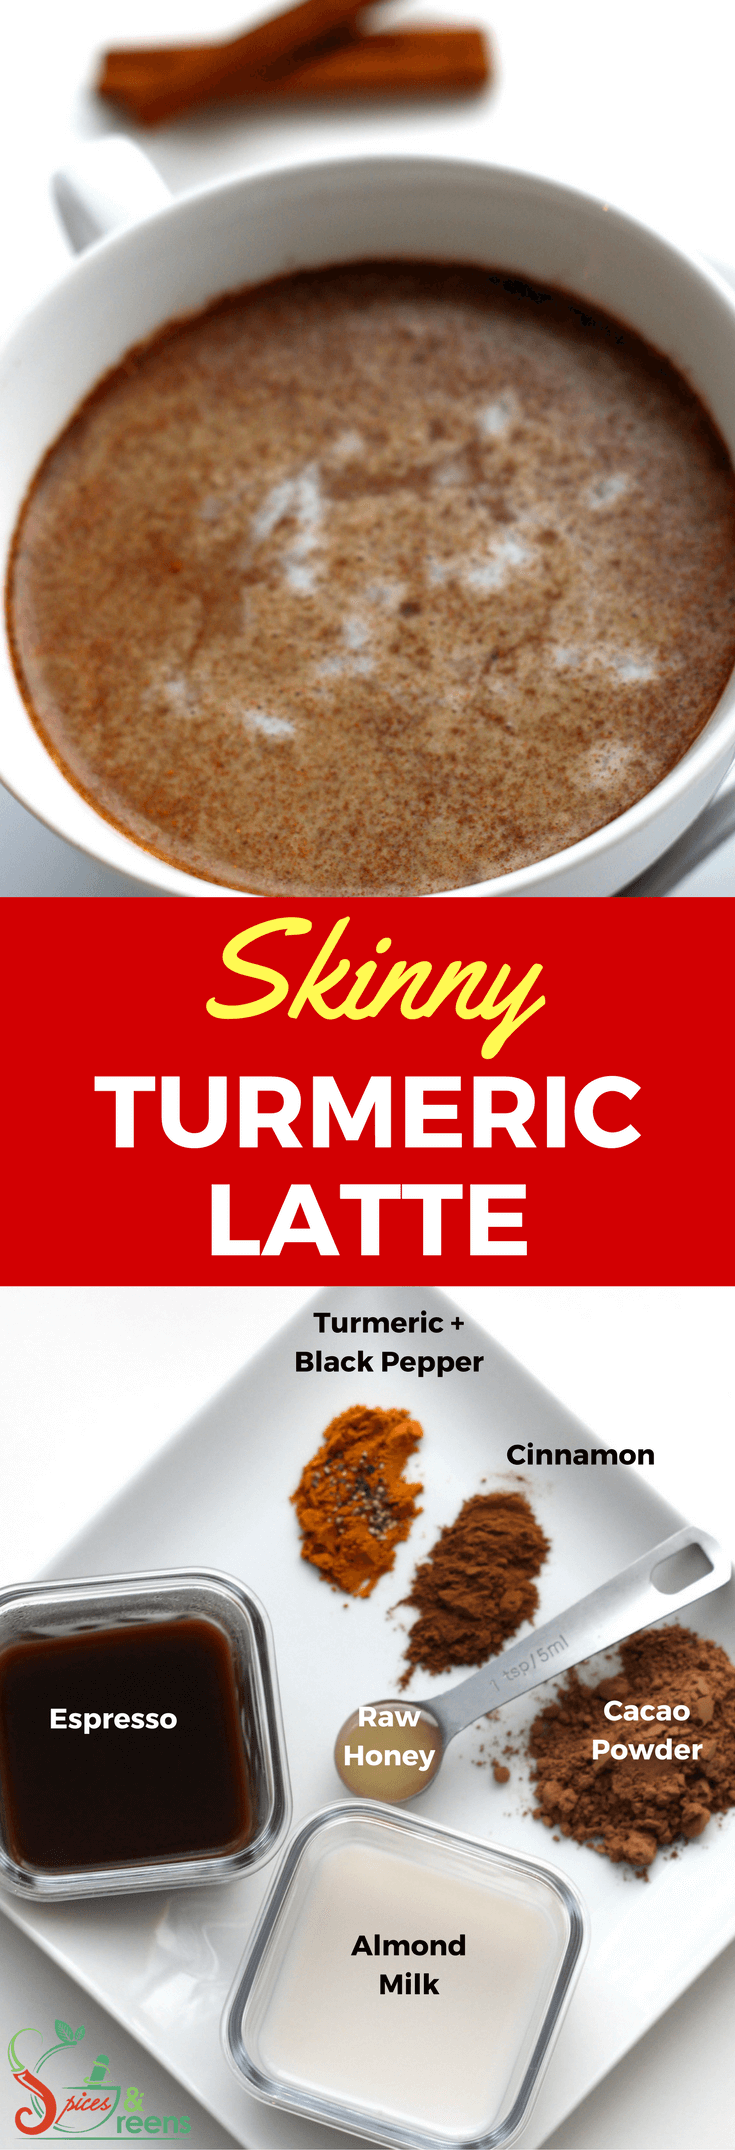 Skinny Turmeric Latte - Spices & Greens